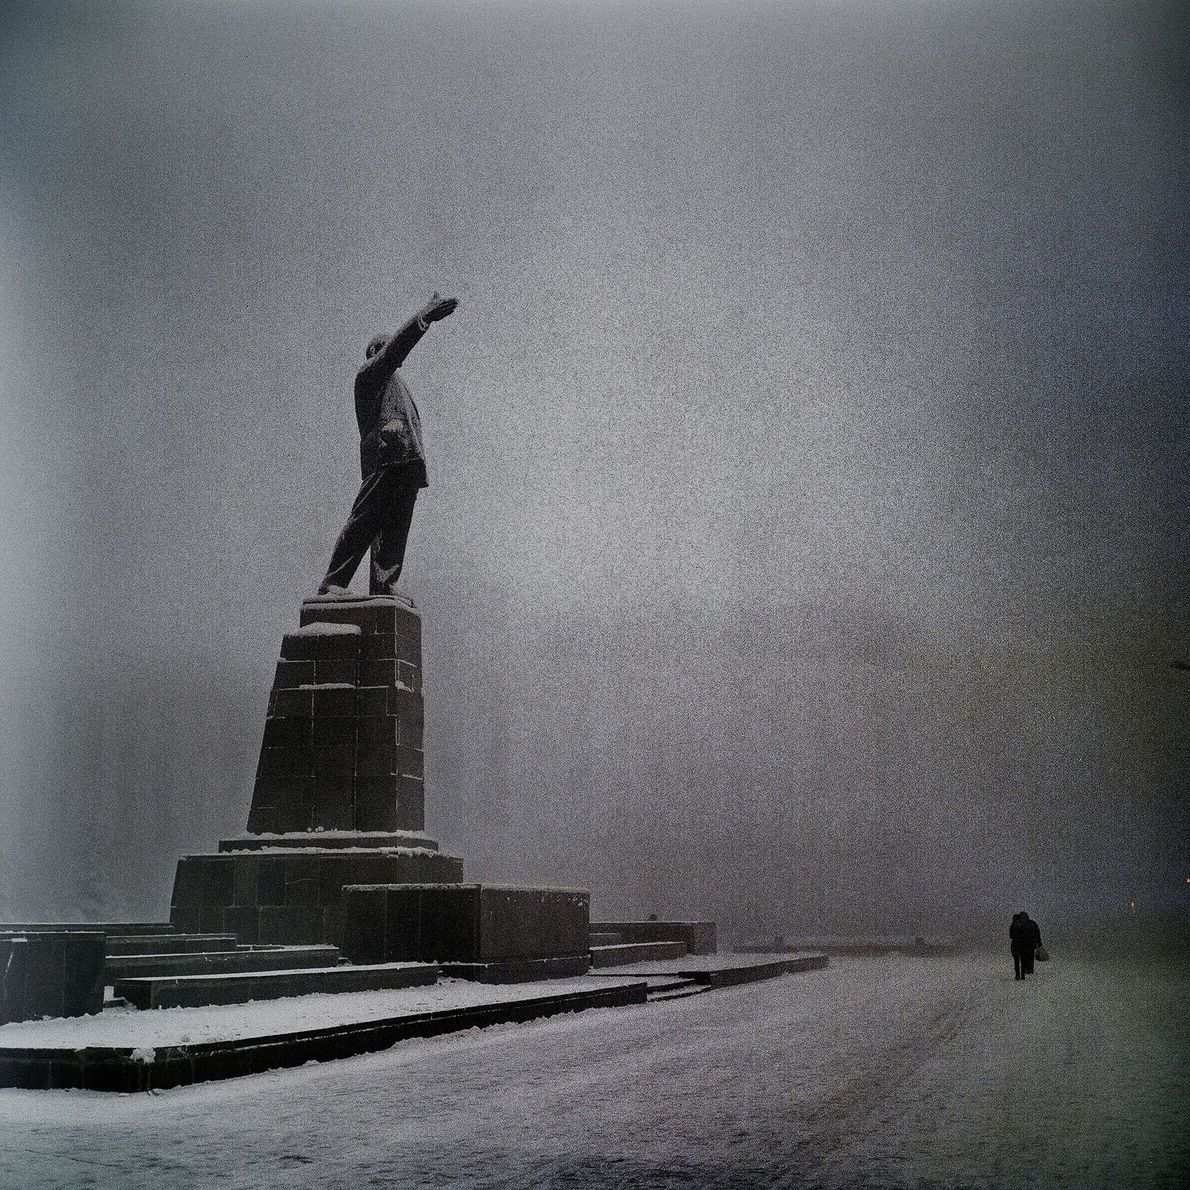 A statue of Lenin keeps watch over the empty Lenin square.